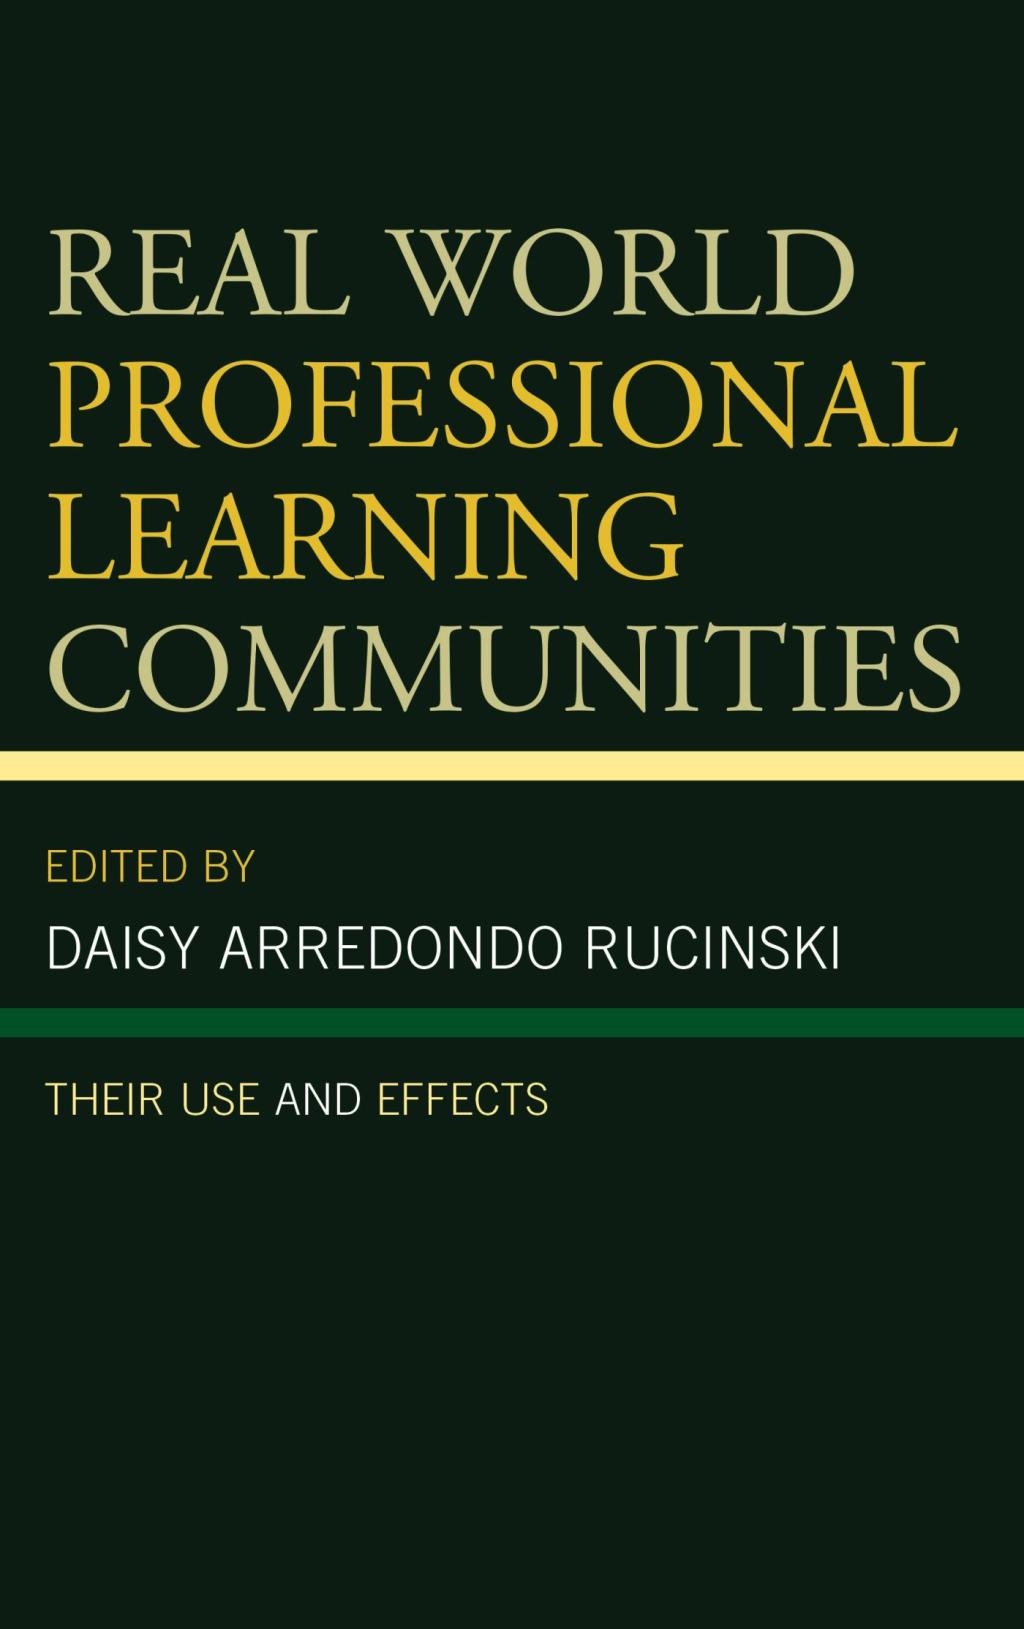 Real World Professional Learning Communities (ebook) eBooks